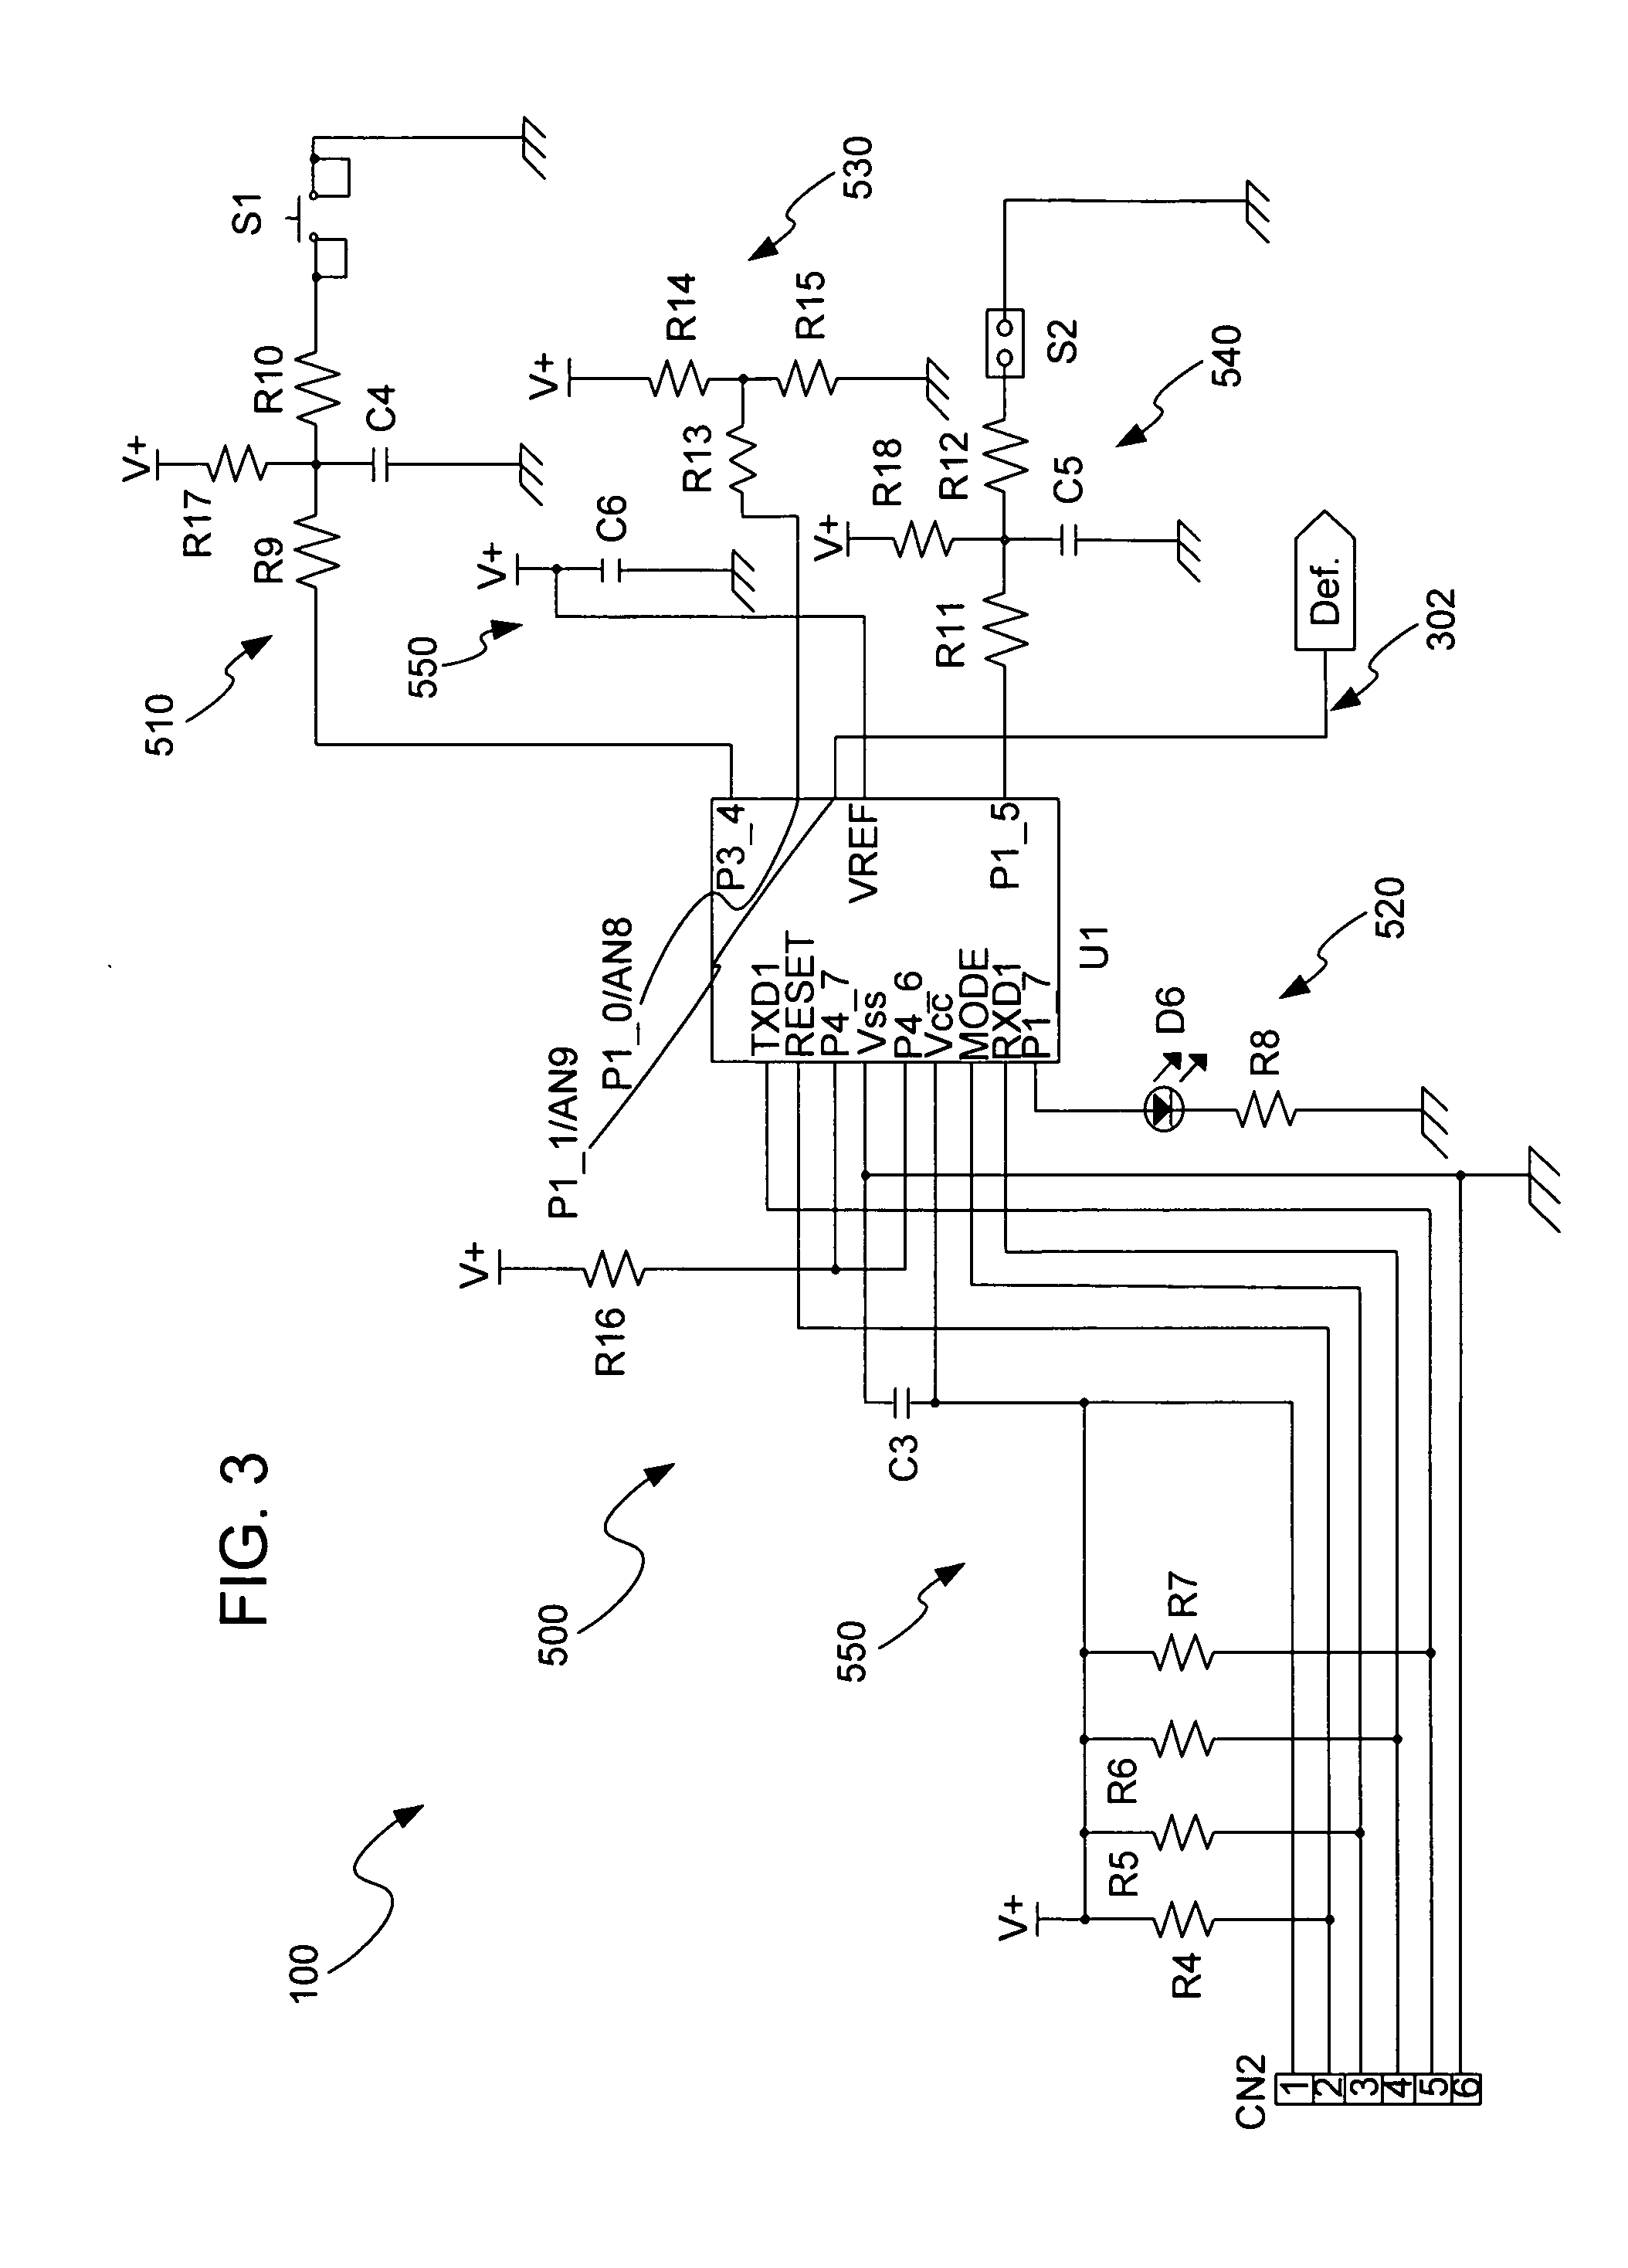 Luxaire Rp024 Wiring Diagram